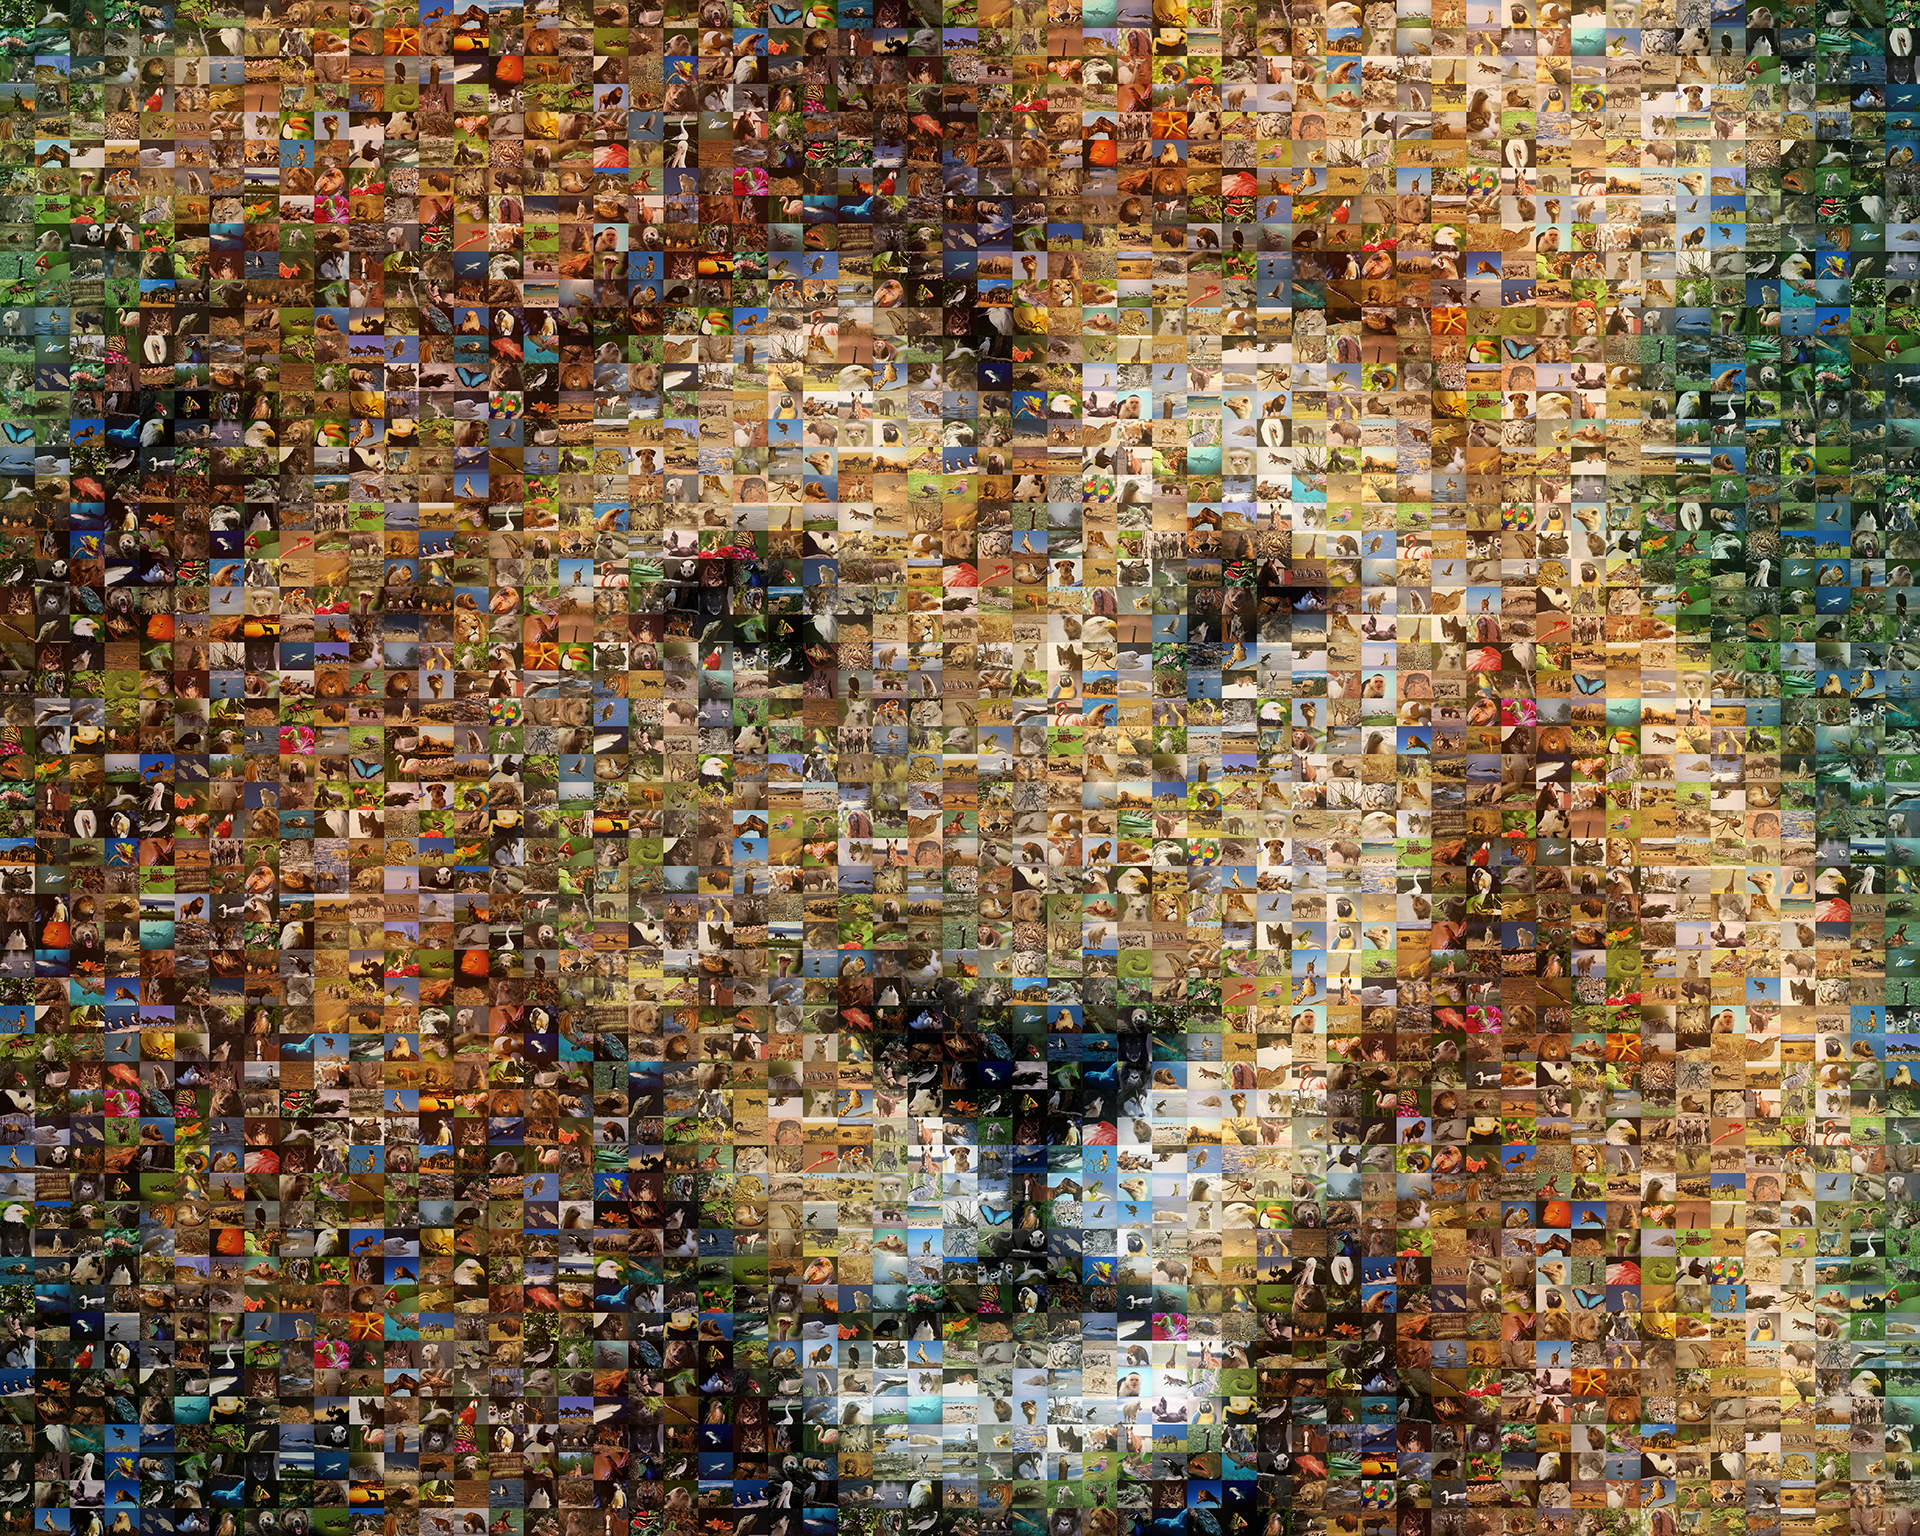 photo mosaic created using over 600 unique photos of animals and wildlife